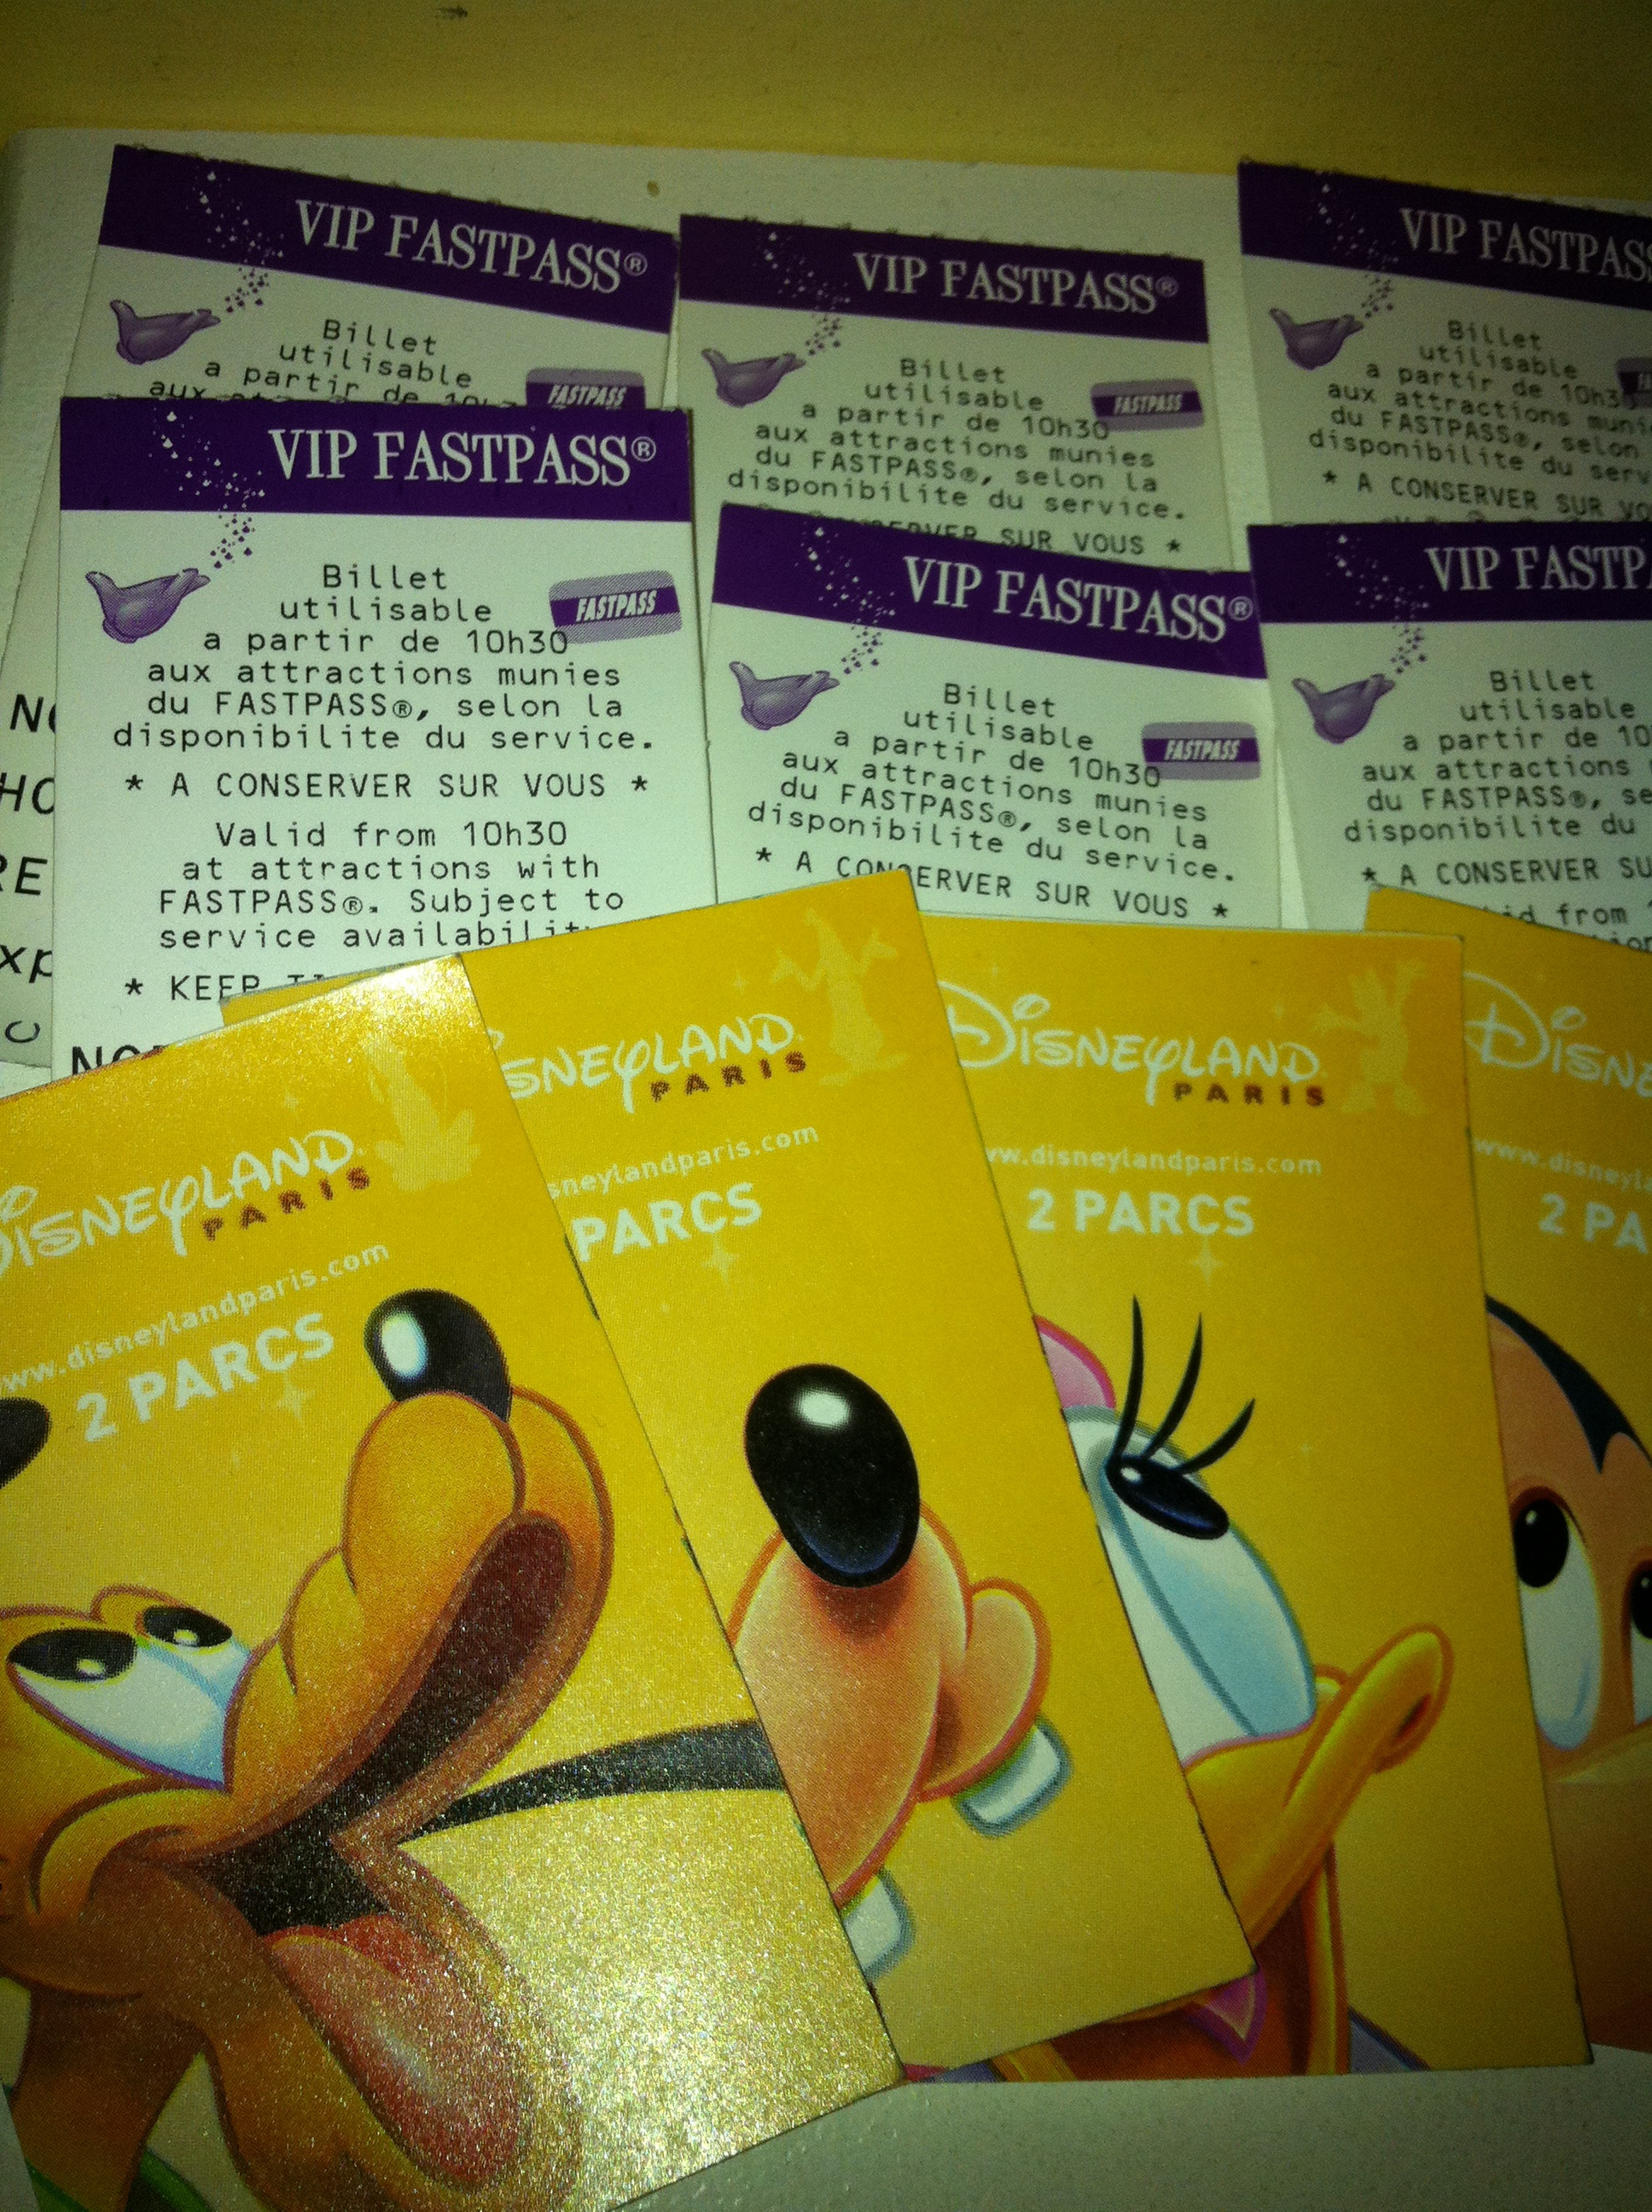 Fastpass goodness